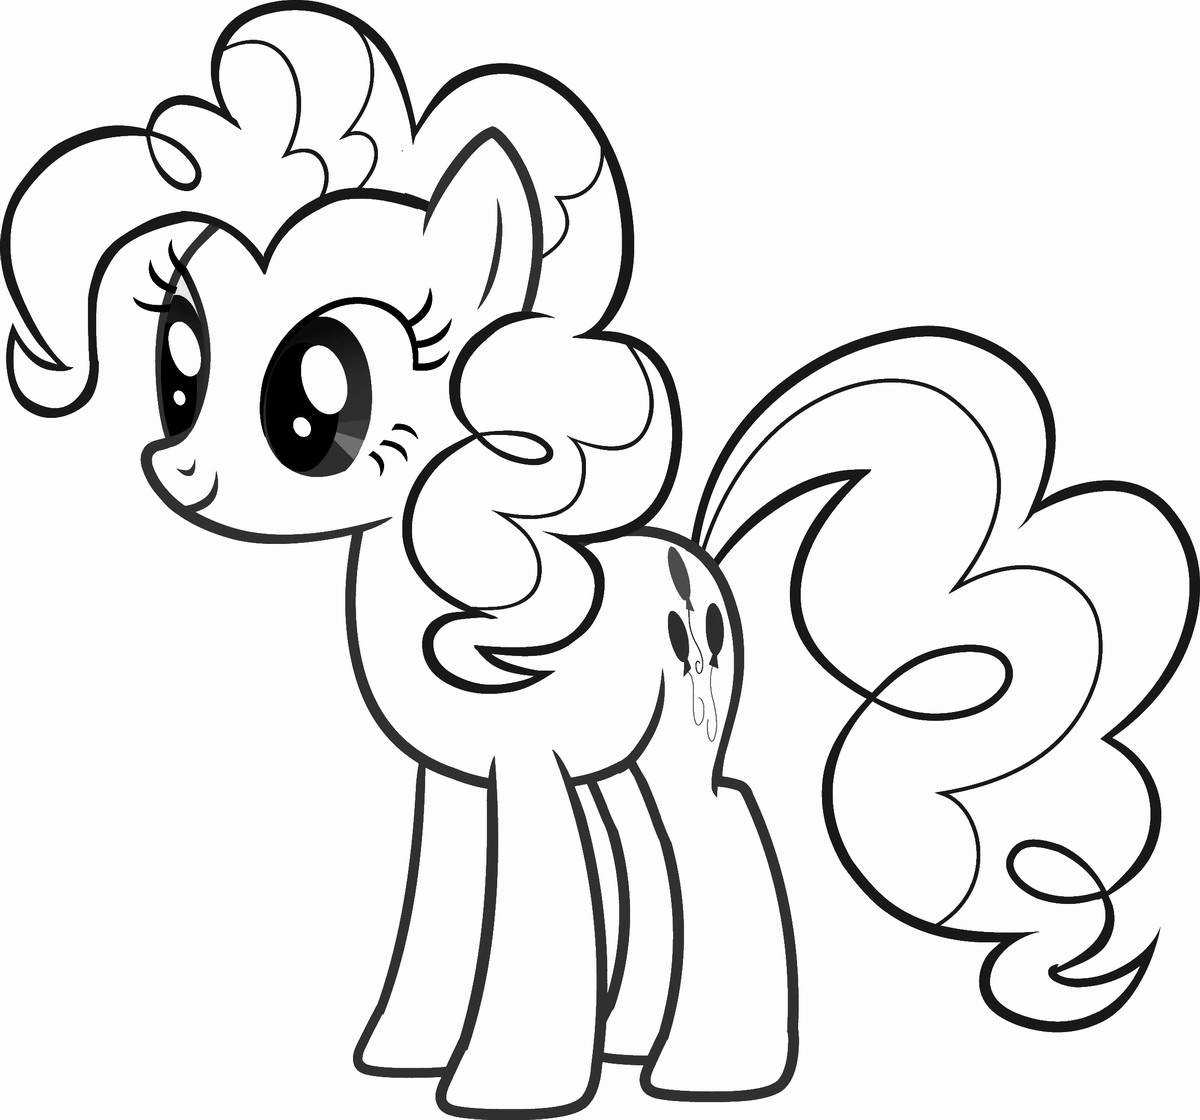 coloring pages of my little pony top printable my little pony coloring pages derrick website pages pony of coloring little my